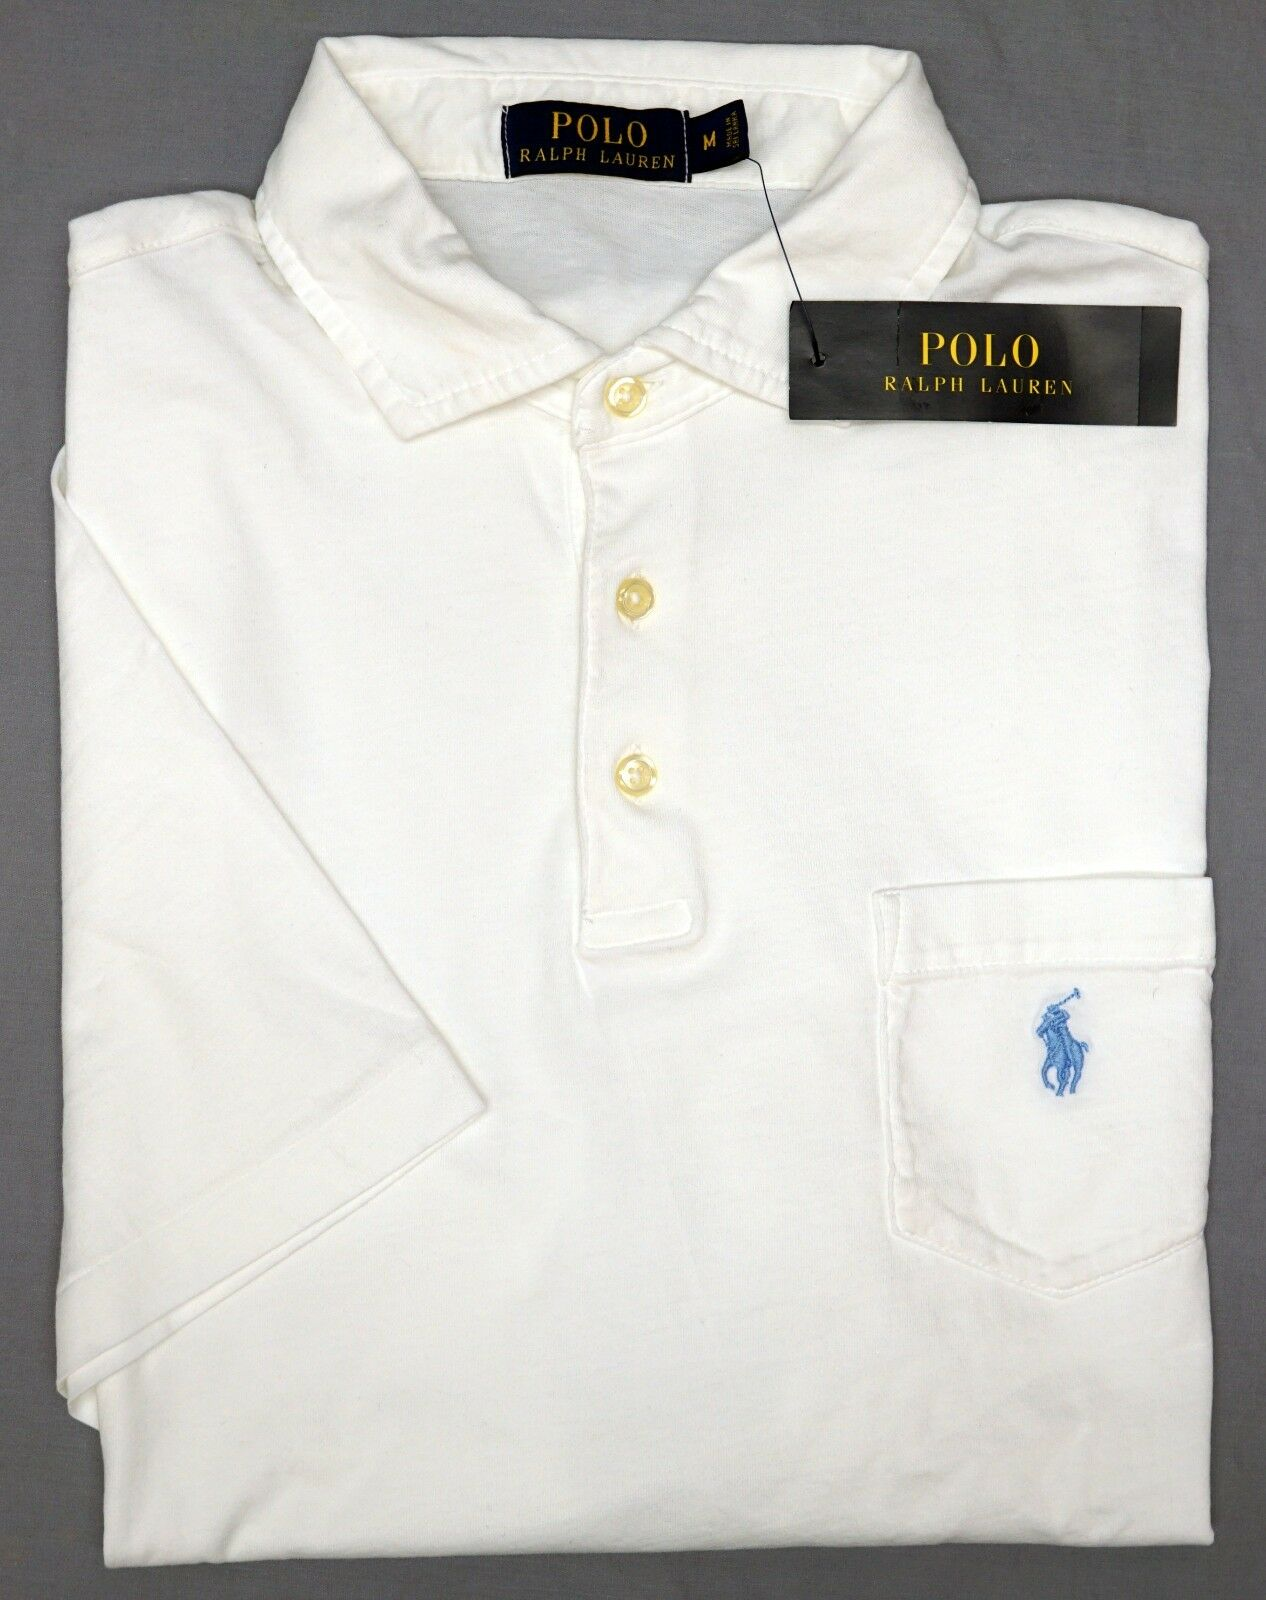 NWT  Polo Ralph Lauren Short Sleeve White Shirt Mens Size M Cotton NEW